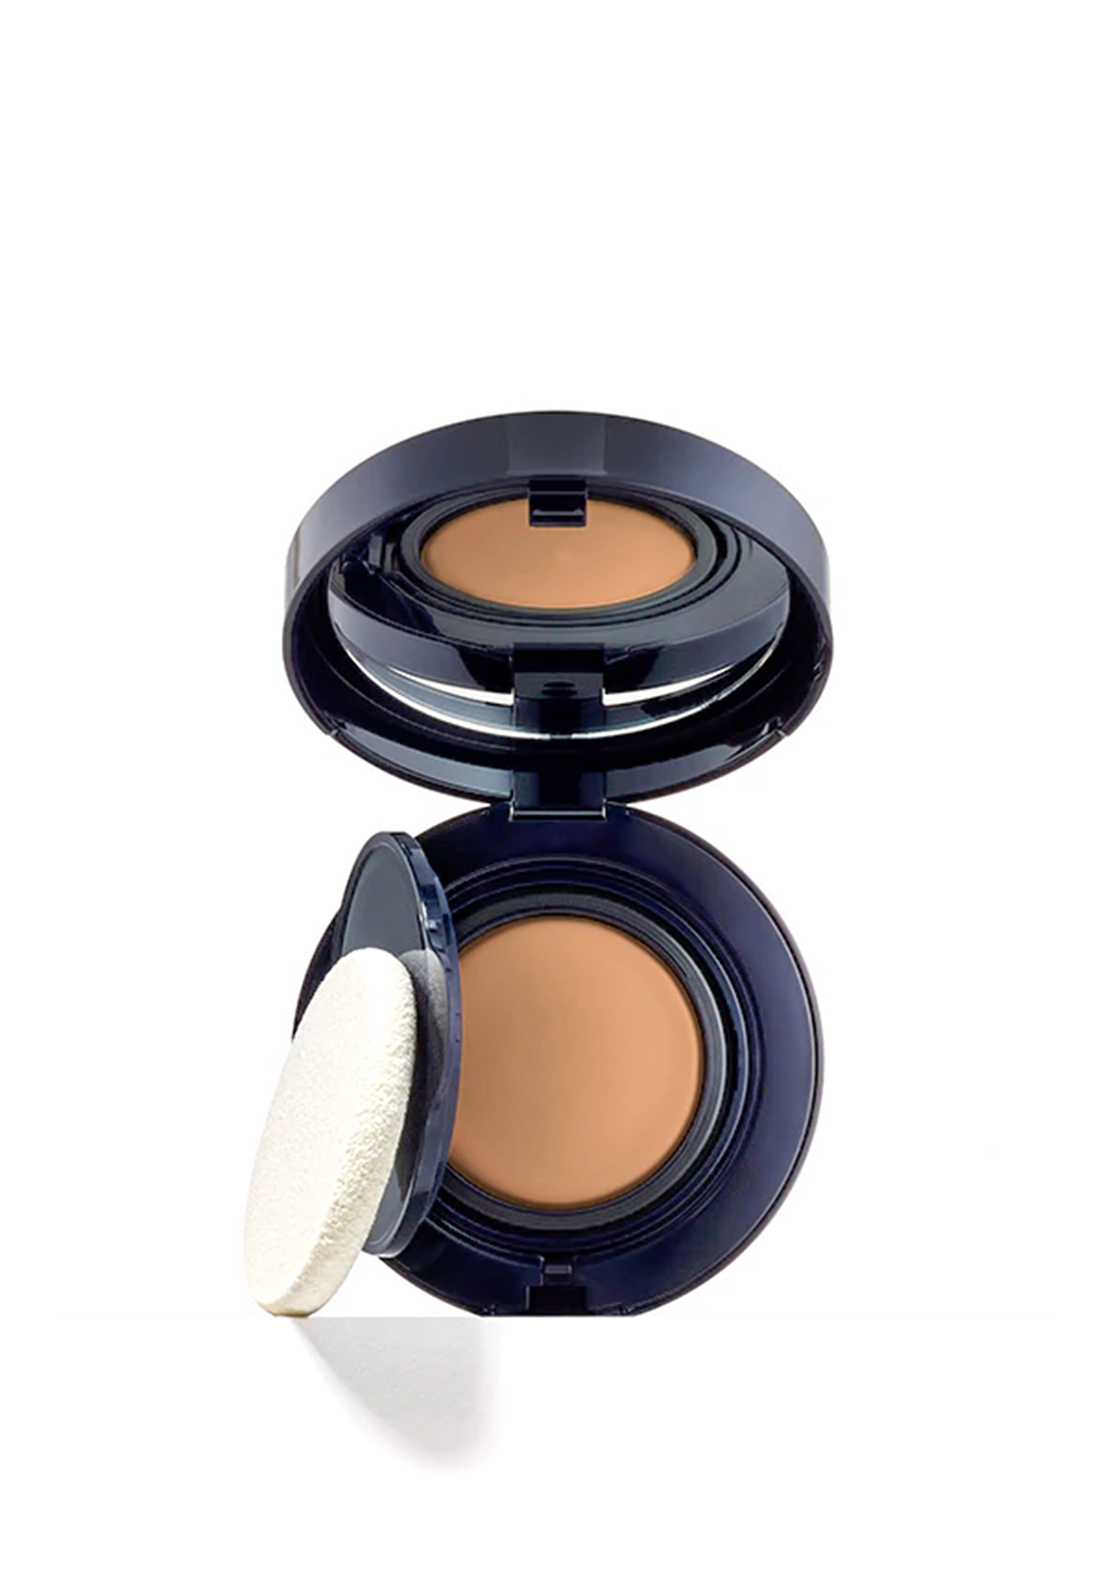 Estee Lauder Perfectionist Compact Makeup, Pebble